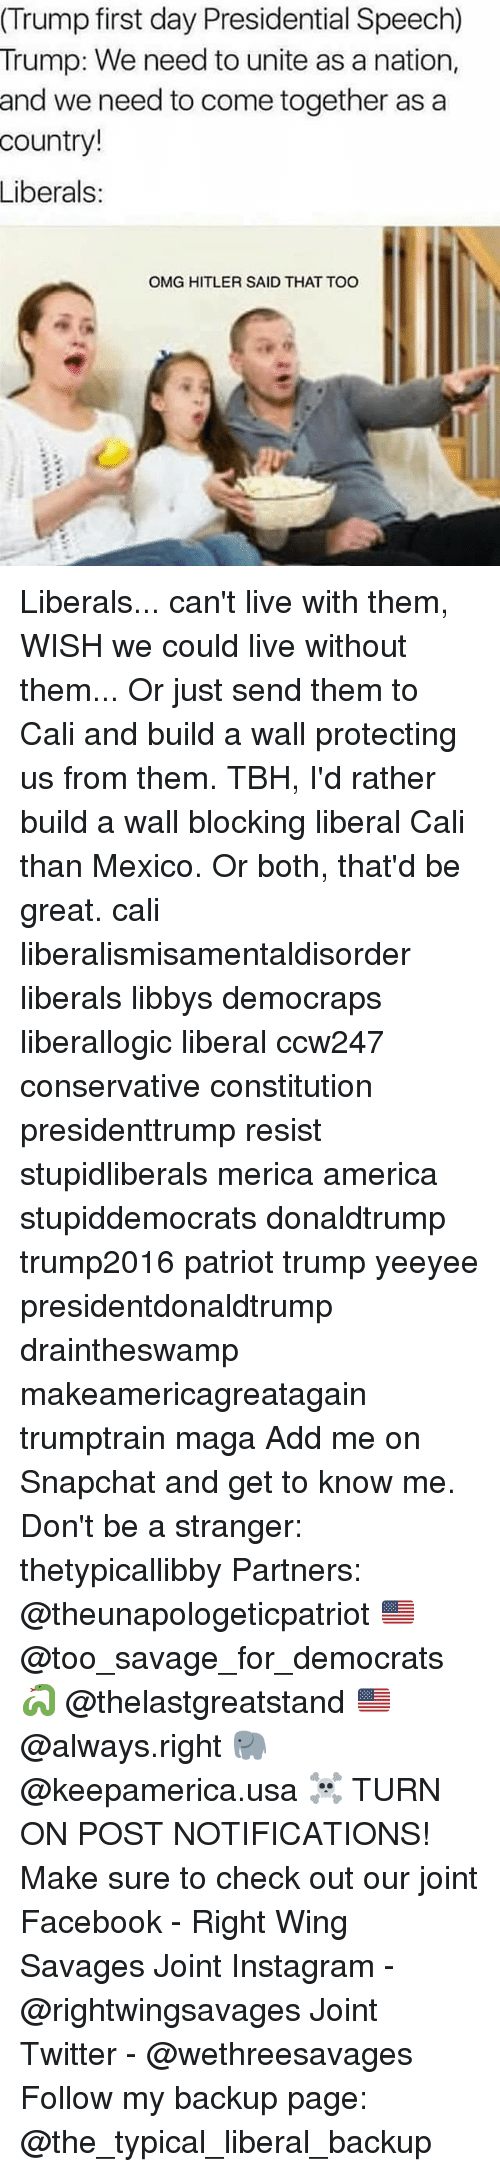 Conservative, Usa, and Page: (Trump first day Presidential Speech)  Trump: We need to unite as a nation,  and we need to come together as a  country!  Liberals  OMG HITLER SAID THAT TOO Liberals... can't live with them, WISH we could live without them... Or just send them to Cali and build a wall protecting us from them. TBH, I'd rather build a wall blocking liberal Cali than Mexico. Or both, that'd be great. cali liberalismisamentaldisorder liberals libbys democraps liberallogic liberal ccw247 conservative constitution presidenttrump resist stupidliberals merica america stupiddemocrats donaldtrump trump2016 patriot trump yeeyee presidentdonaldtrump draintheswamp makeamericagreatagain trumptrain maga Add me on Snapchat and get to know me. Don't be a stranger: thetypicallibby Partners: @theunapologeticpatriot 🇺🇸 @too_savage_for_democrats 🐍 @thelastgreatstand 🇺🇸 @always.right 🐘 @keepamerica.usa ☠️ TURN ON POST NOTIFICATIONS! Make sure to check out our joint Facebook - Right Wing Savages Joint Instagram - @rightwingsavages Joint Twitter - @wethreesavages Follow my backup page: @the_typical_liberal_backup